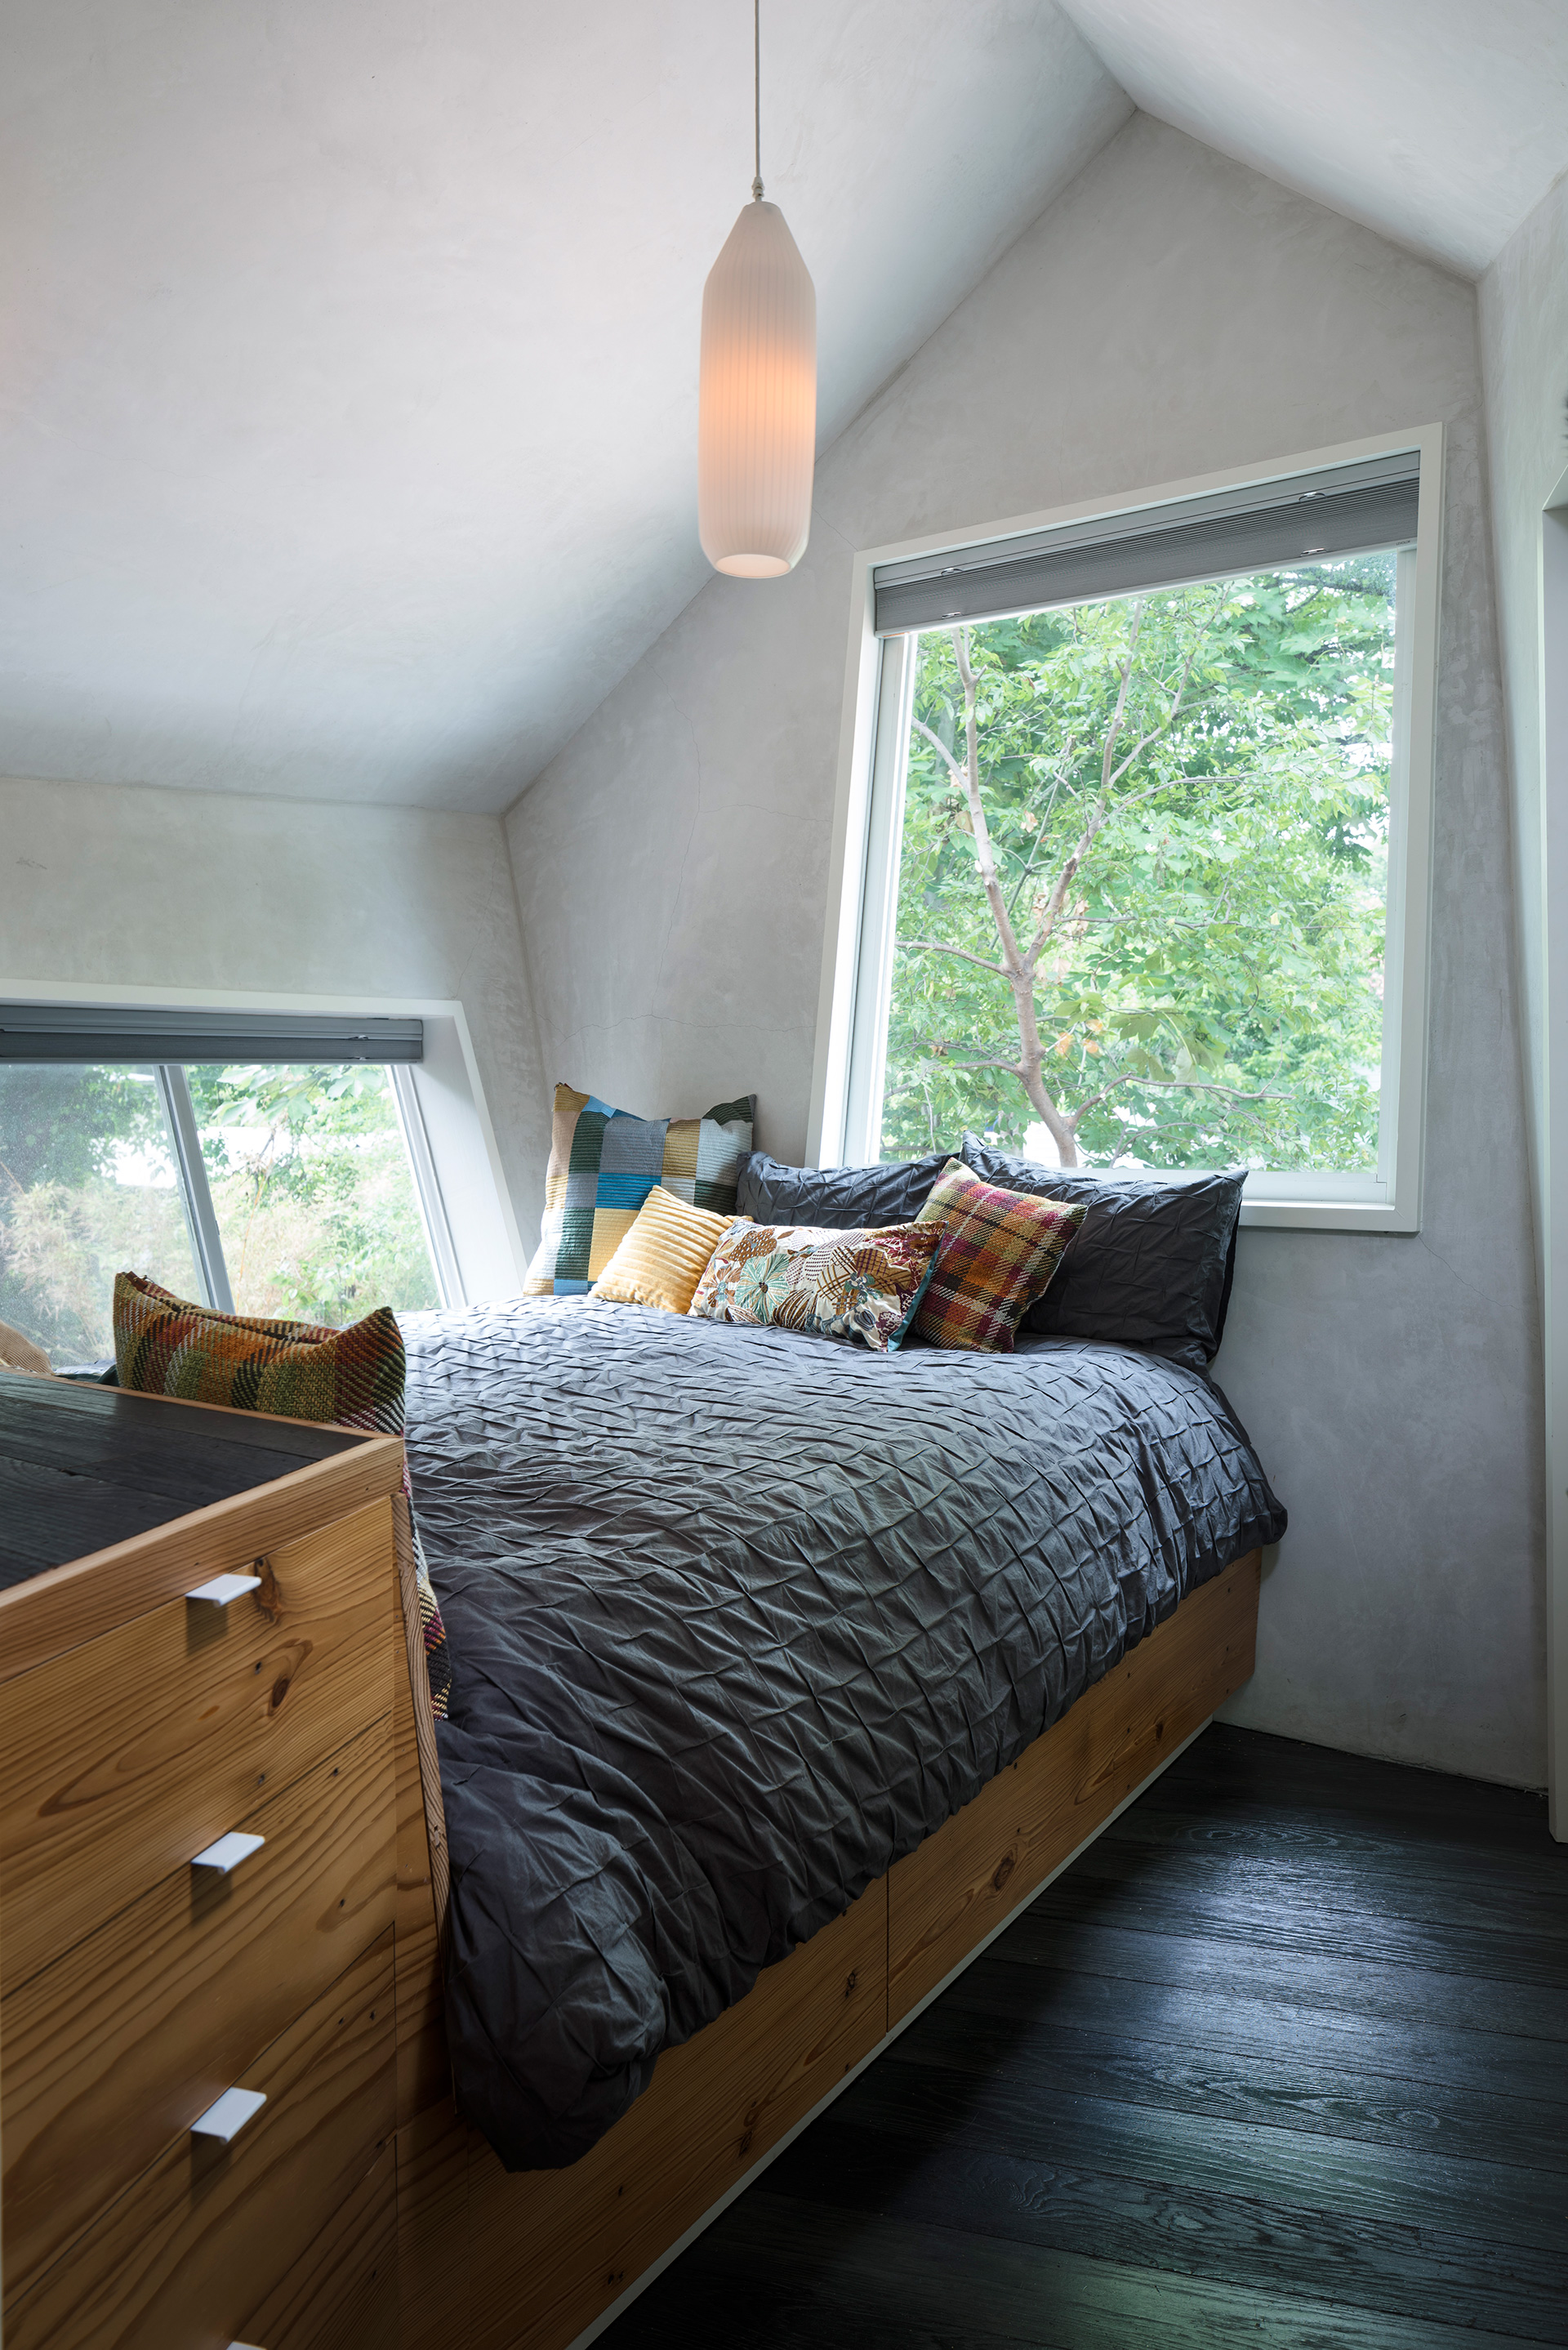 The bedroom is at its widest around shoulder height | The Hive| Nicole Blair| Studio 512 | STIR